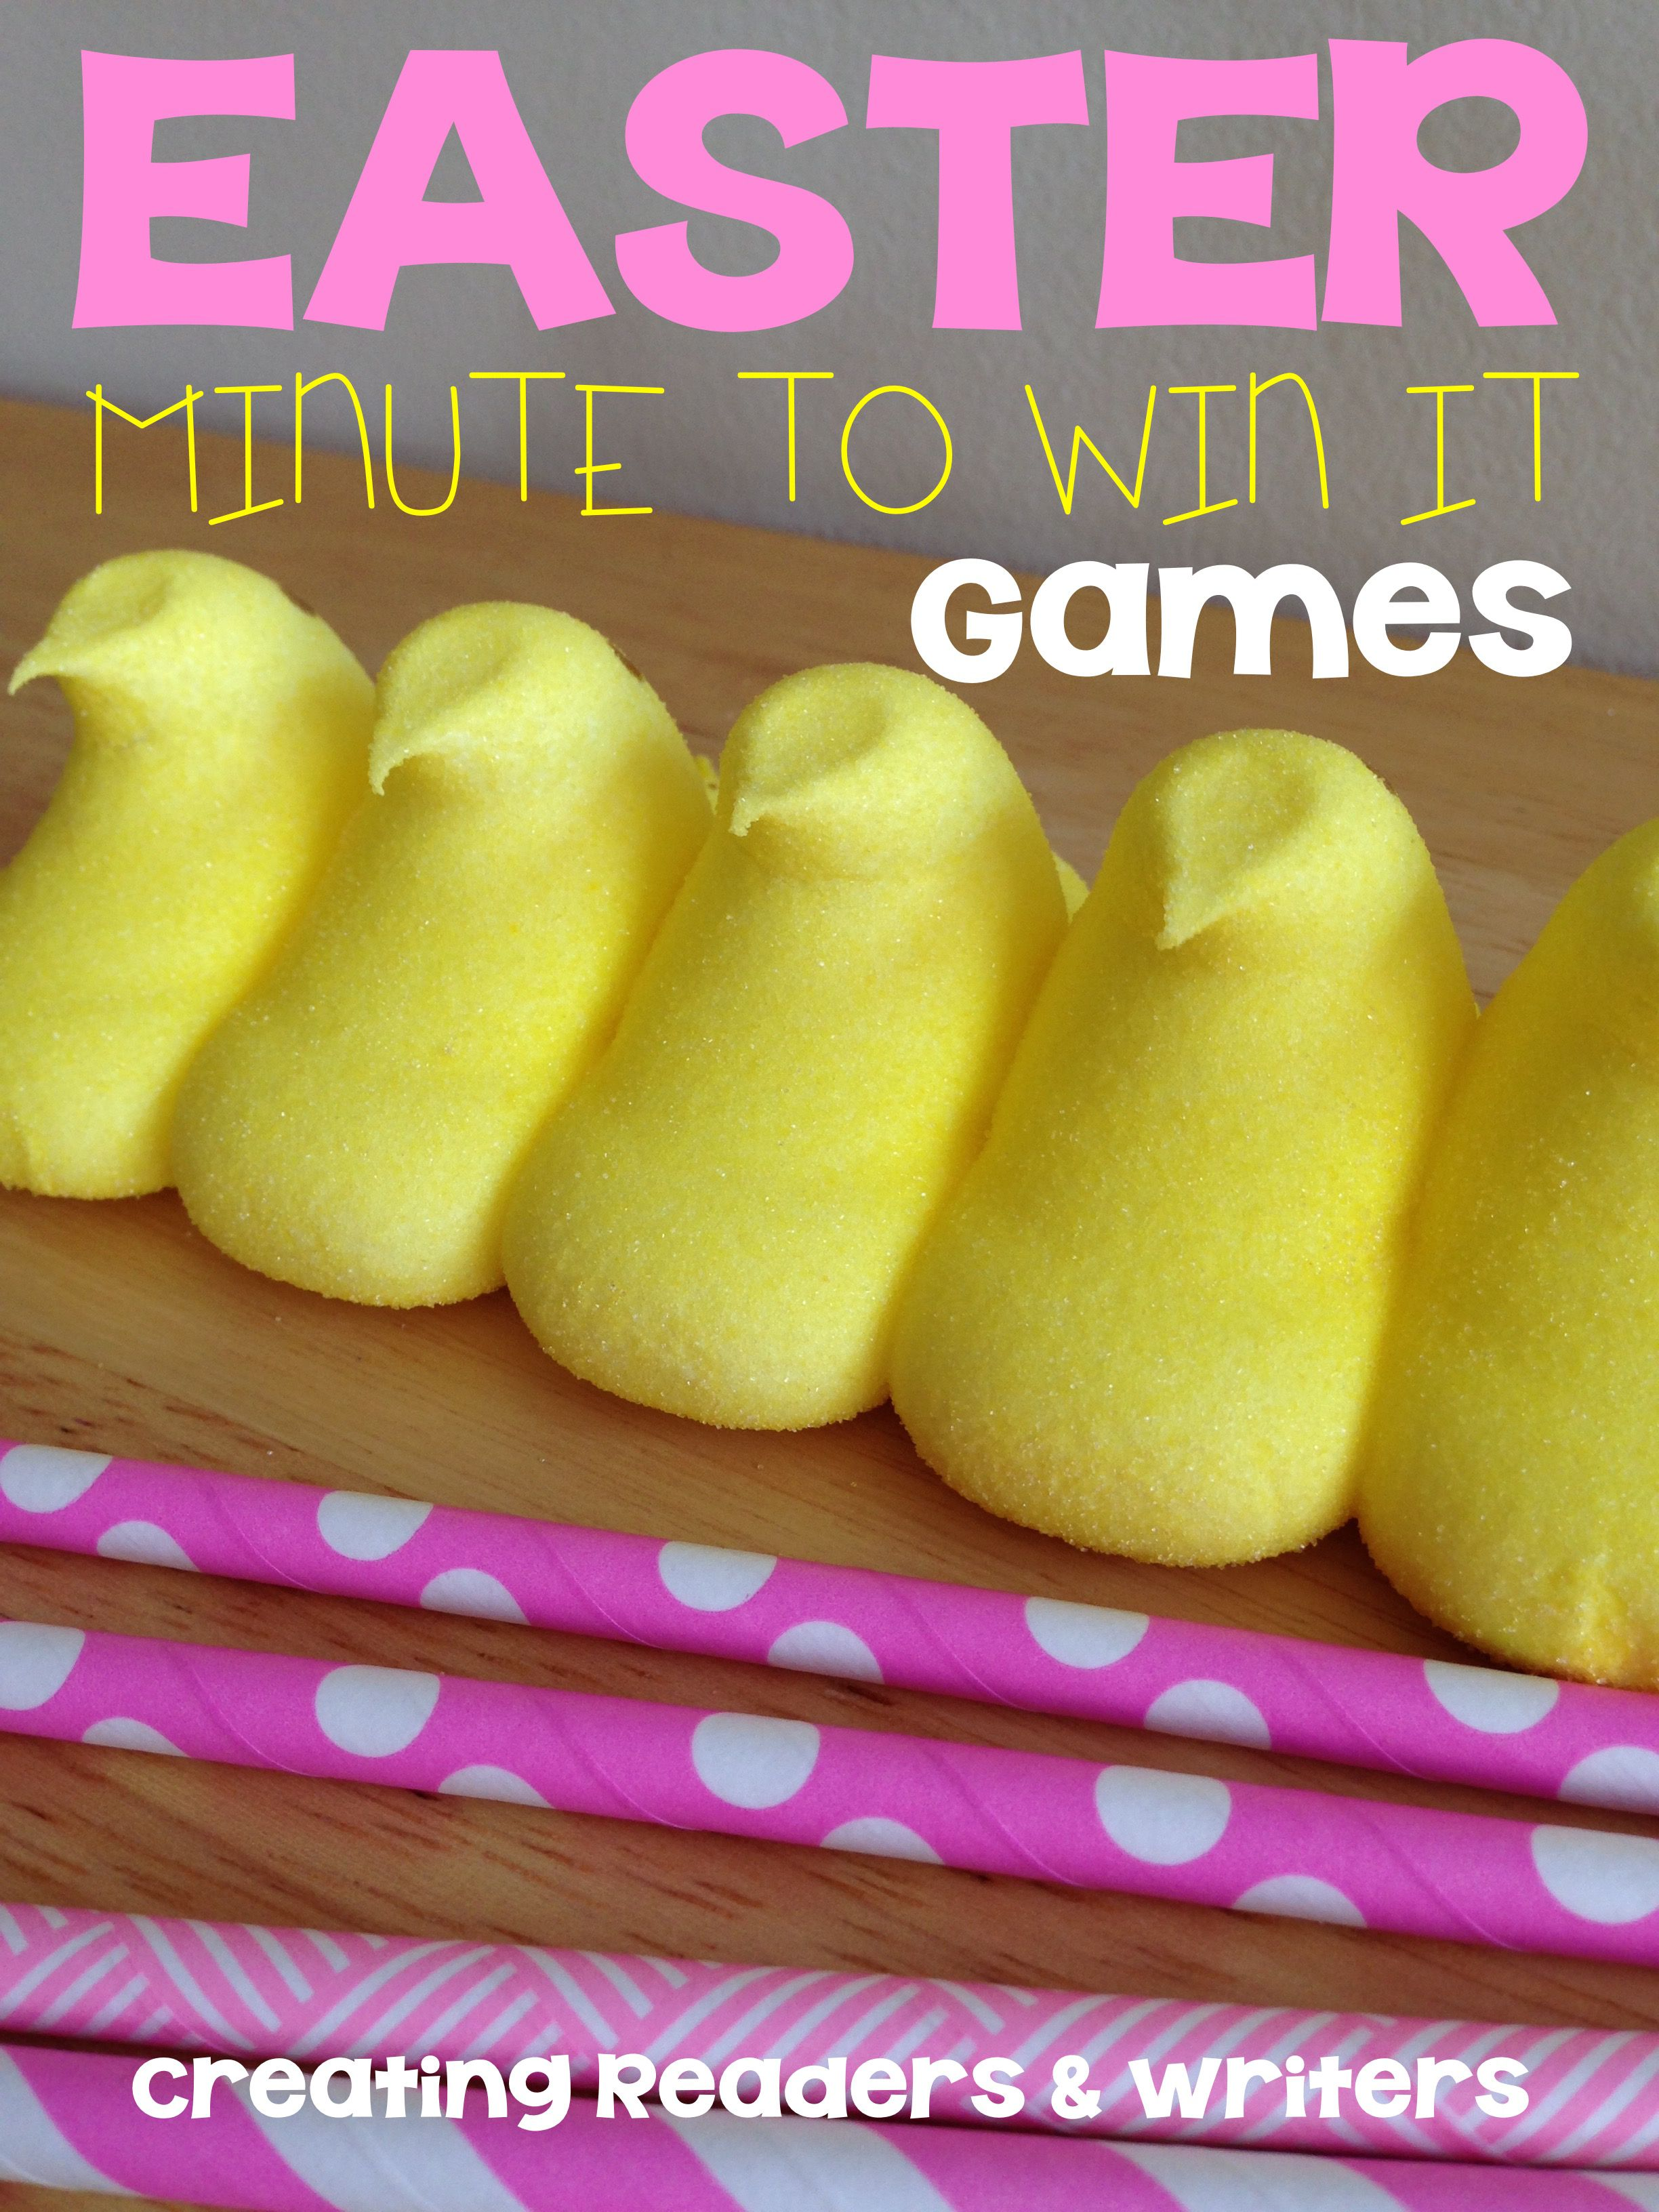 Fun and simple easter minute to win it games for the classroom fun and simple easter minute to win it games for the classroom great with family and friends at home too creating readers and writers negle Gallery